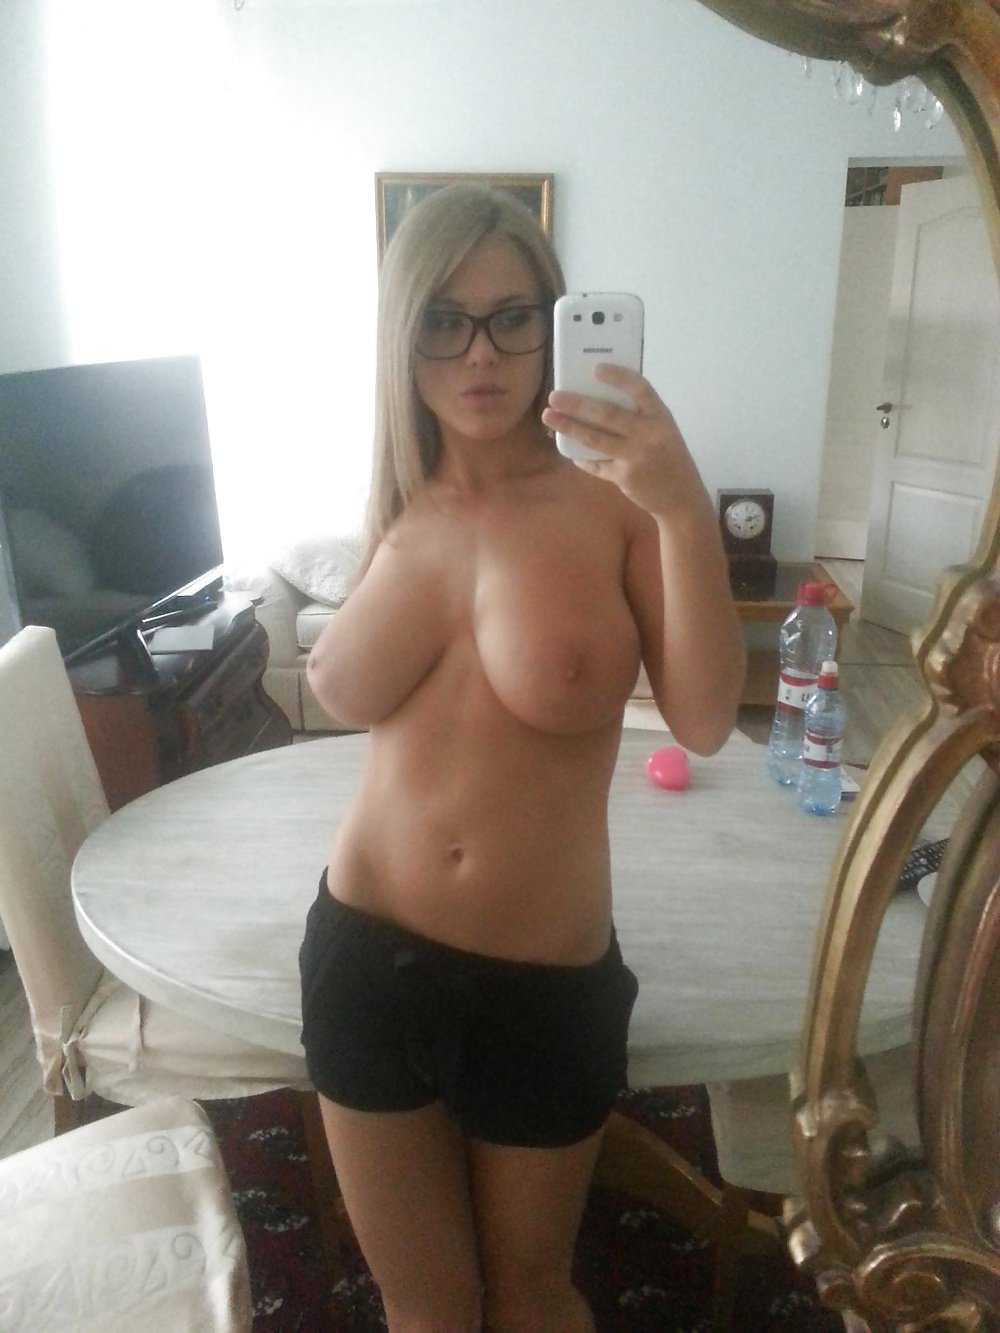 Knows Girl with nerd glasses tits confirm